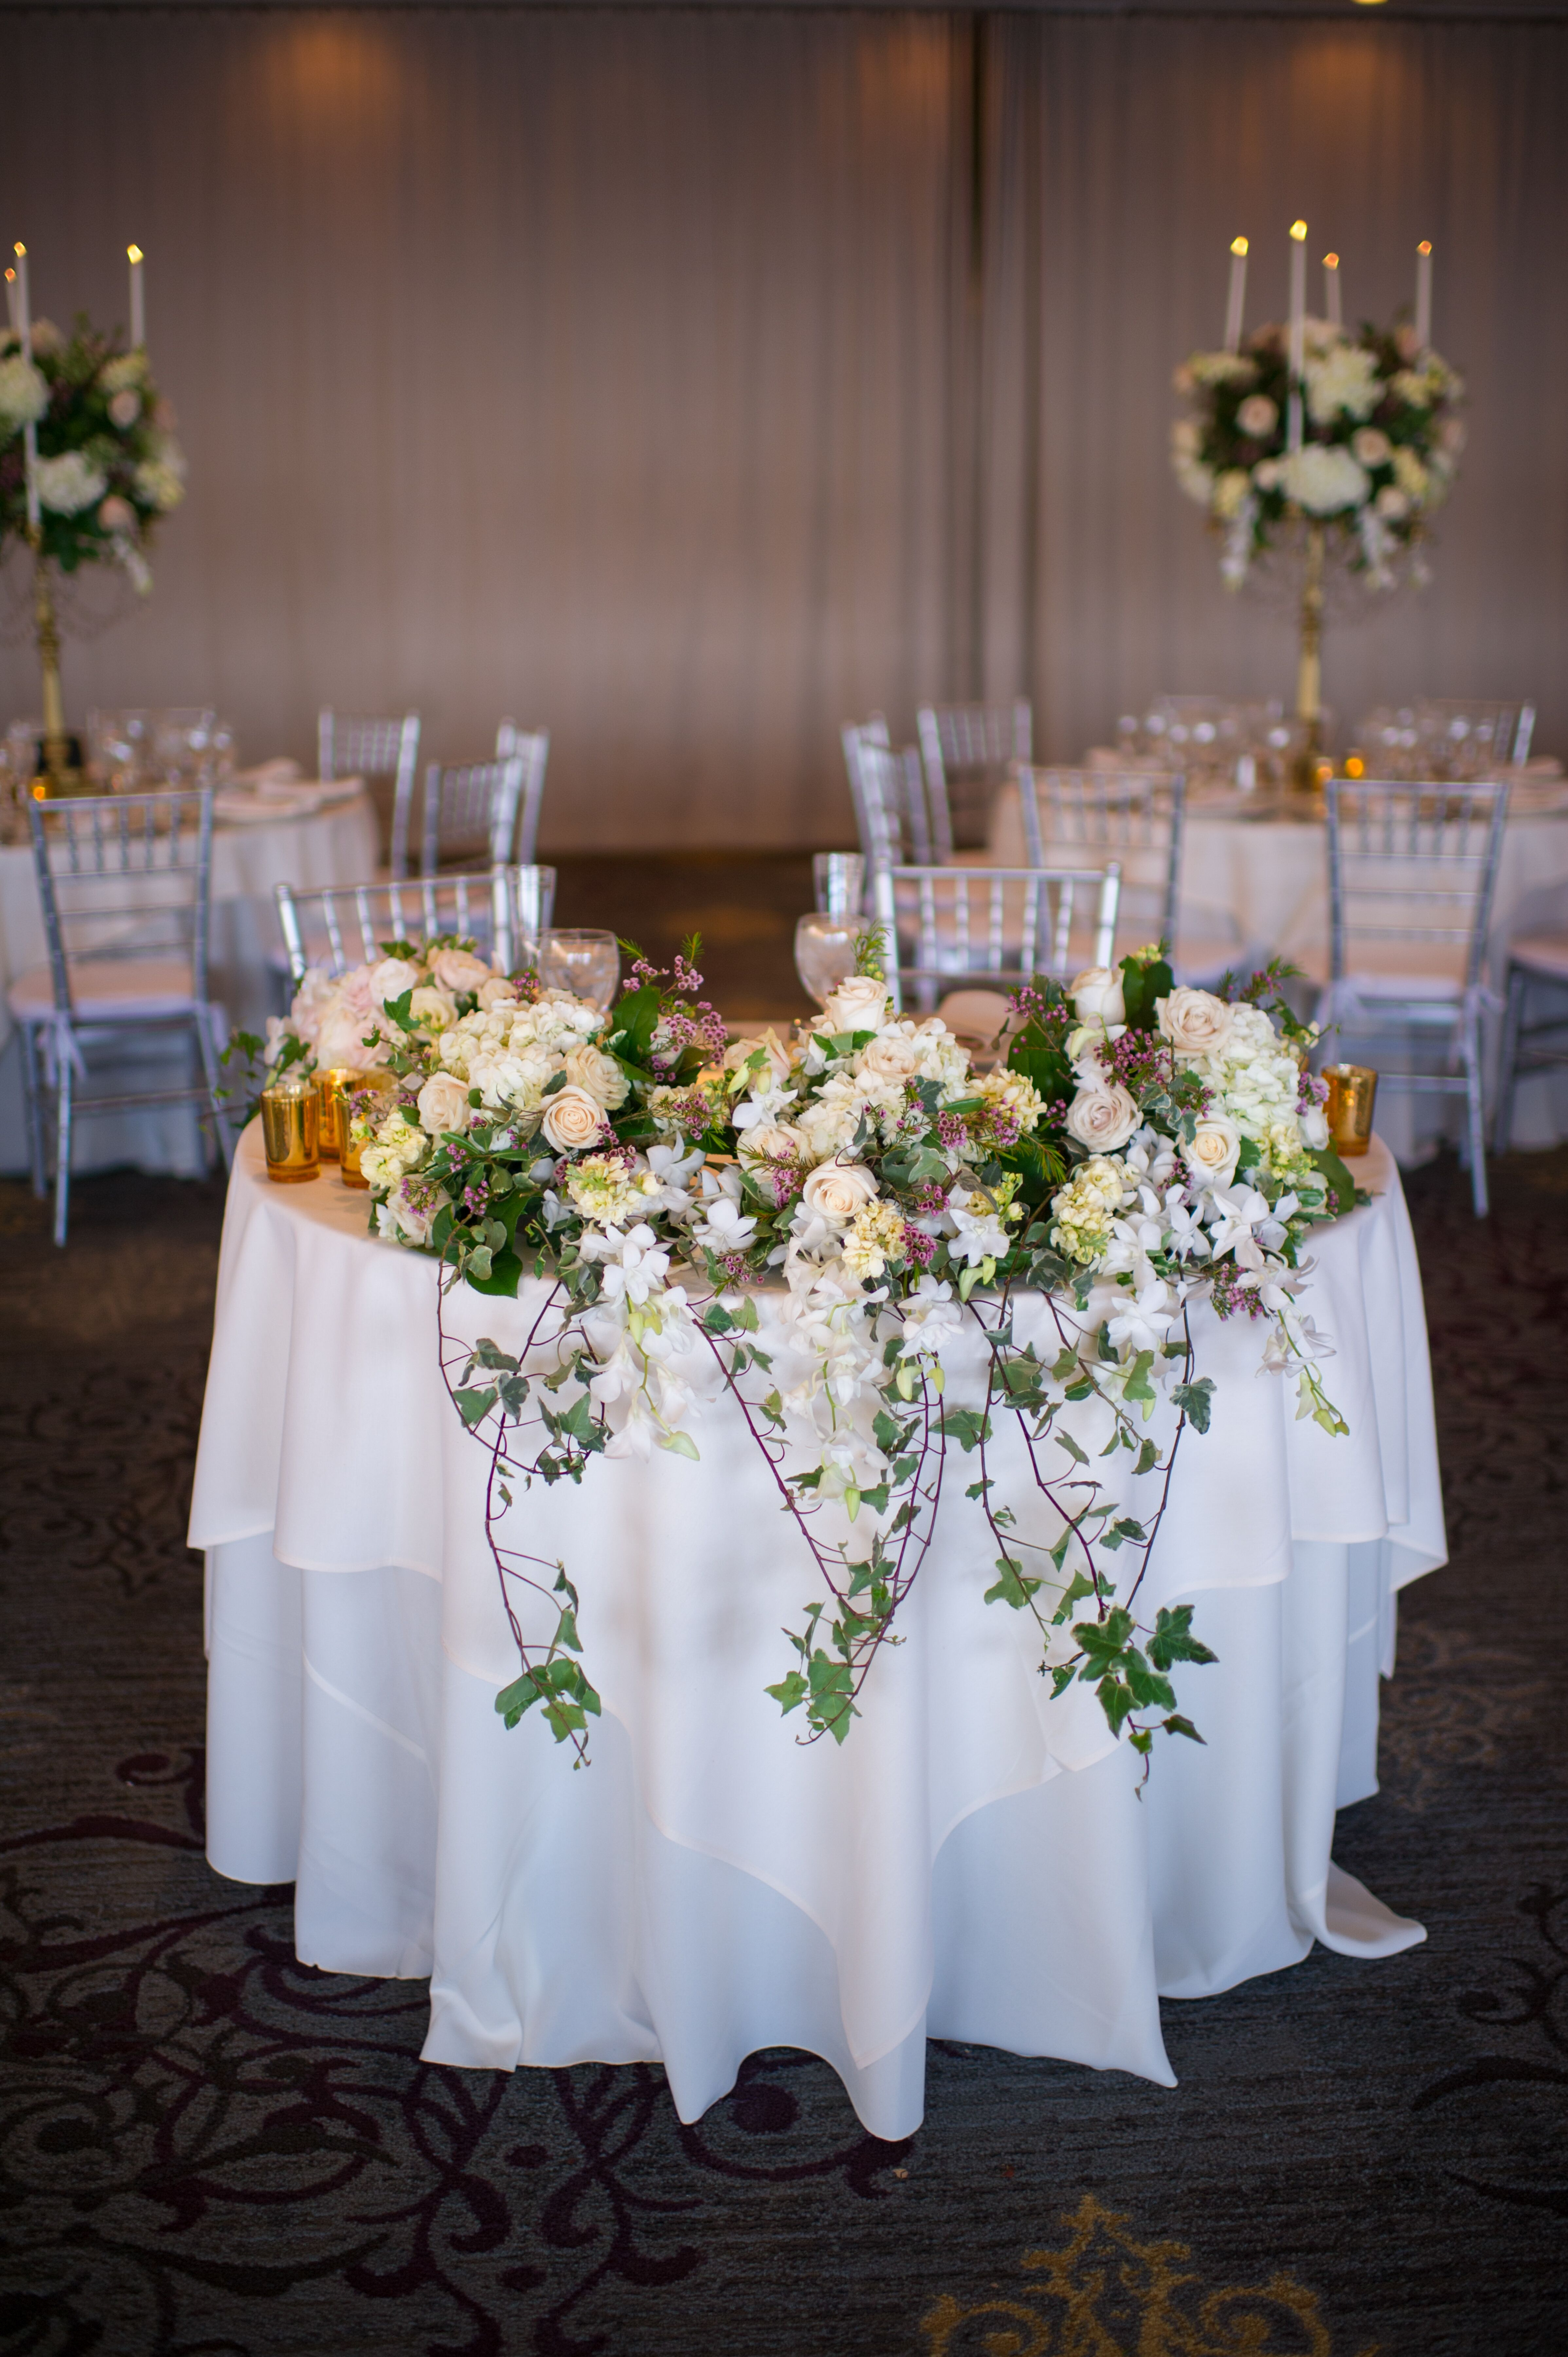 Cascading Ivy And Rose Sweetheart Table Centerpiece